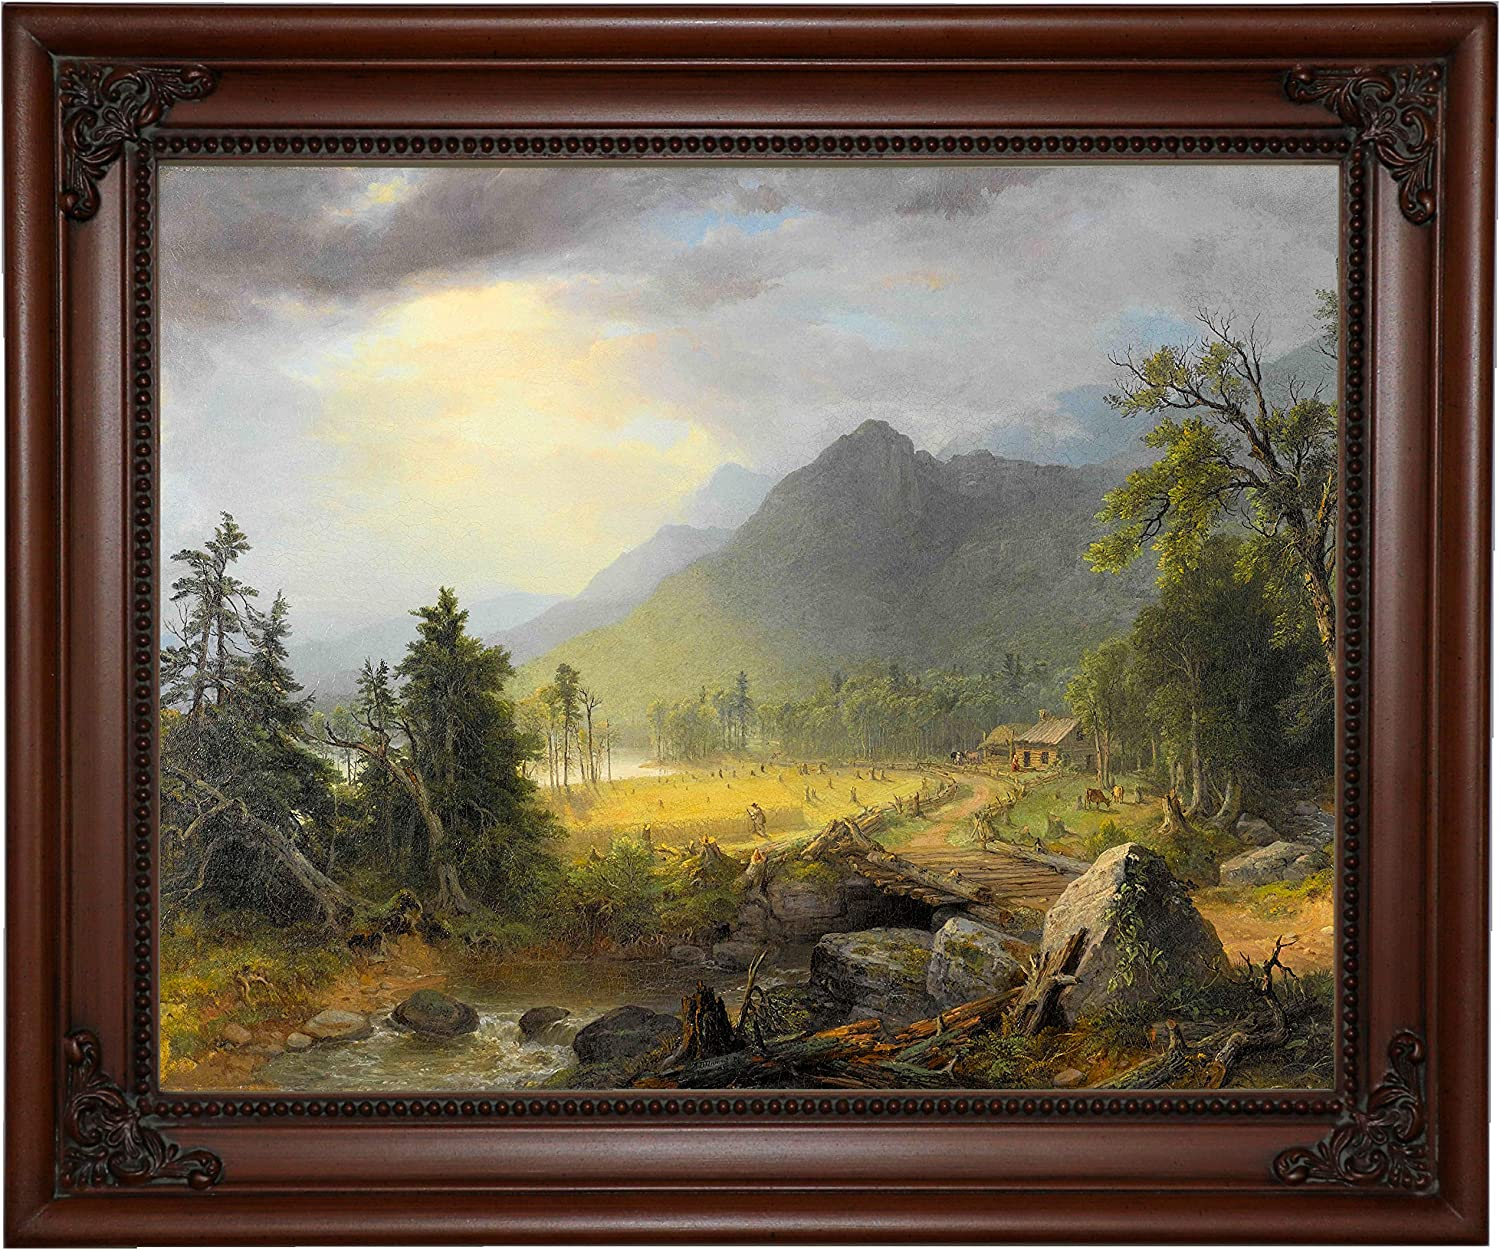 Amazon Com Historic Art Gallery The First Harvest In The Wilderness 1855 By Asher B Durand Framed Canvas Print Size 11x14 Brown Posters Prints